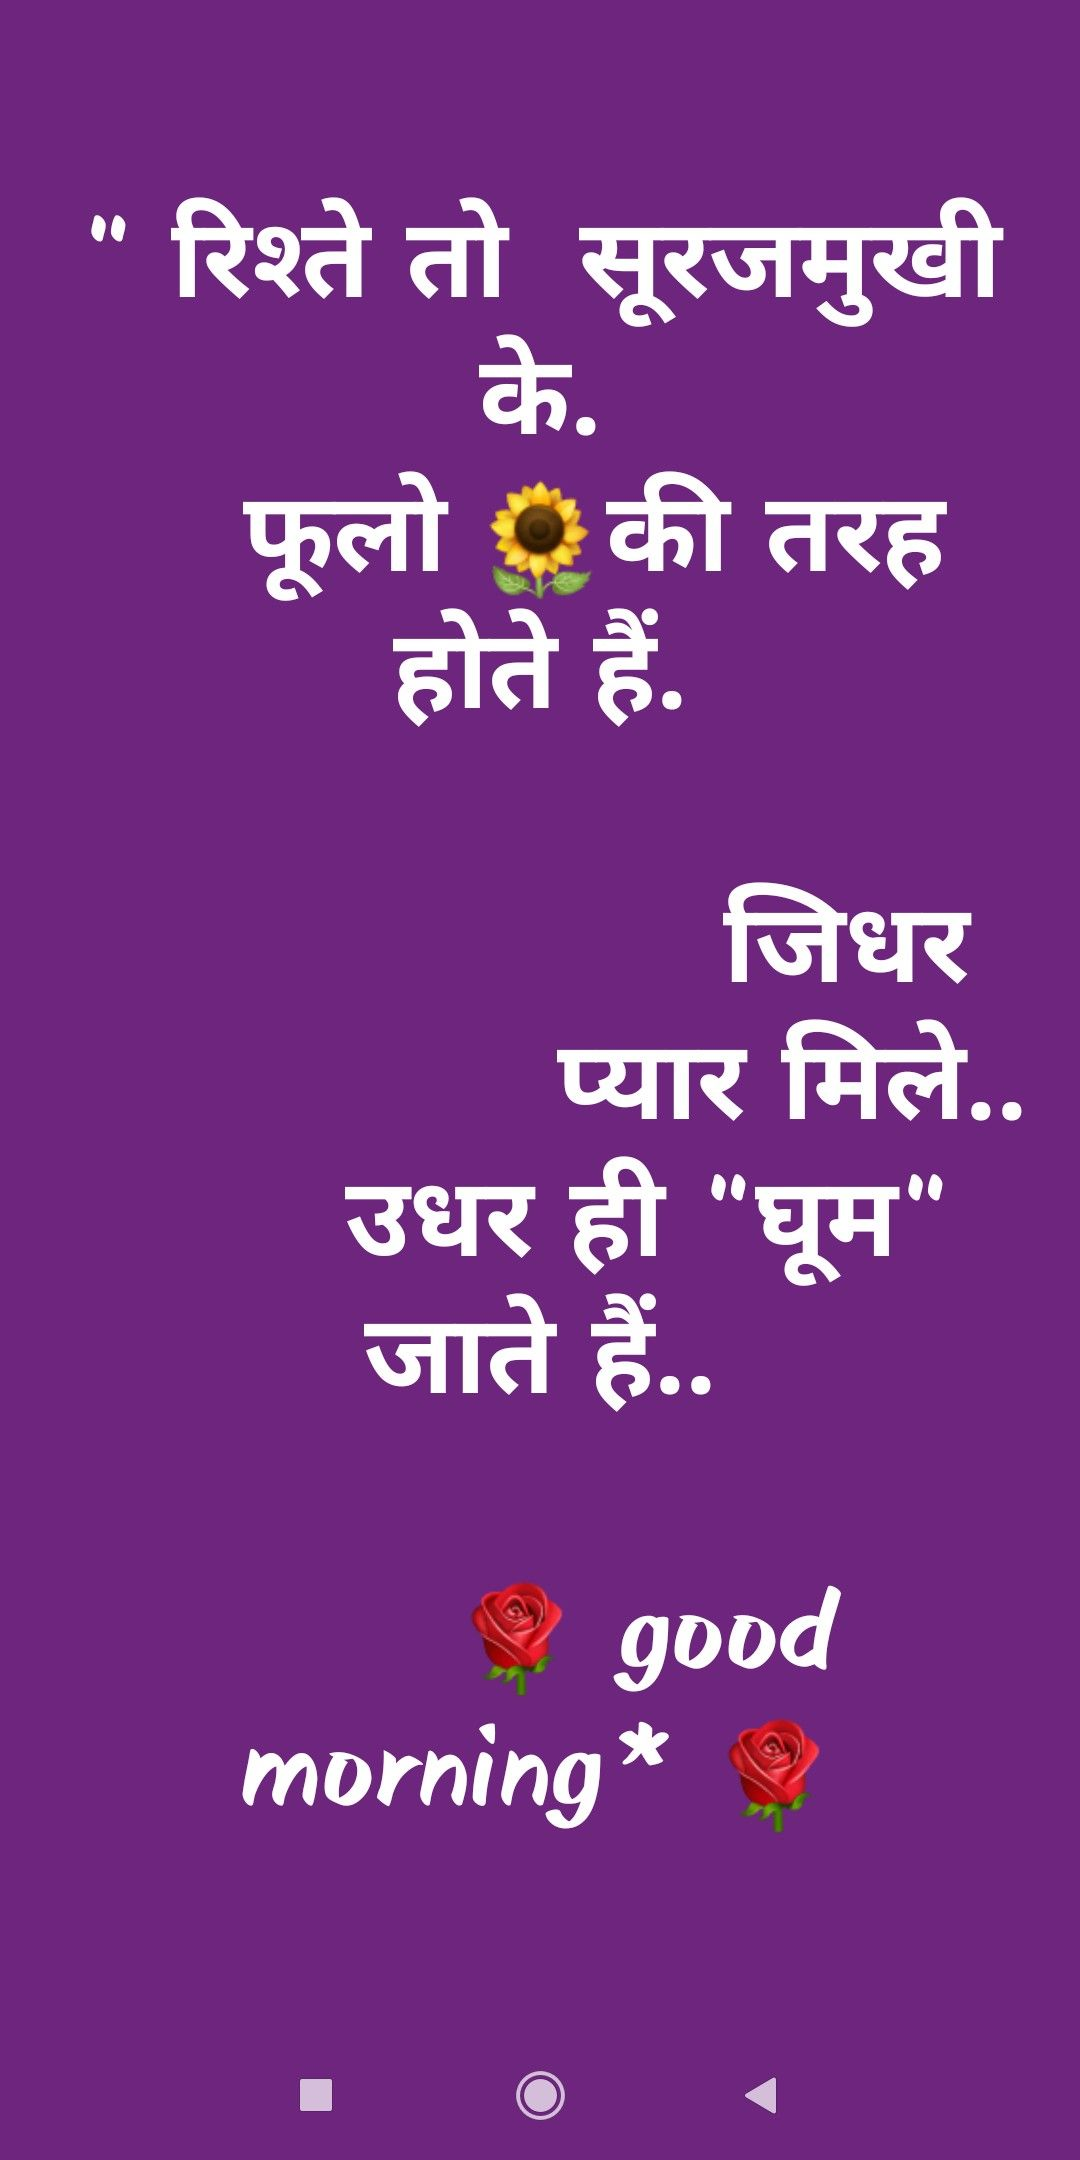 Pin By Pooja Mishra On Quotes In 2020 Good Morning Quotes Funny Attitude Quotes Morning Quotes